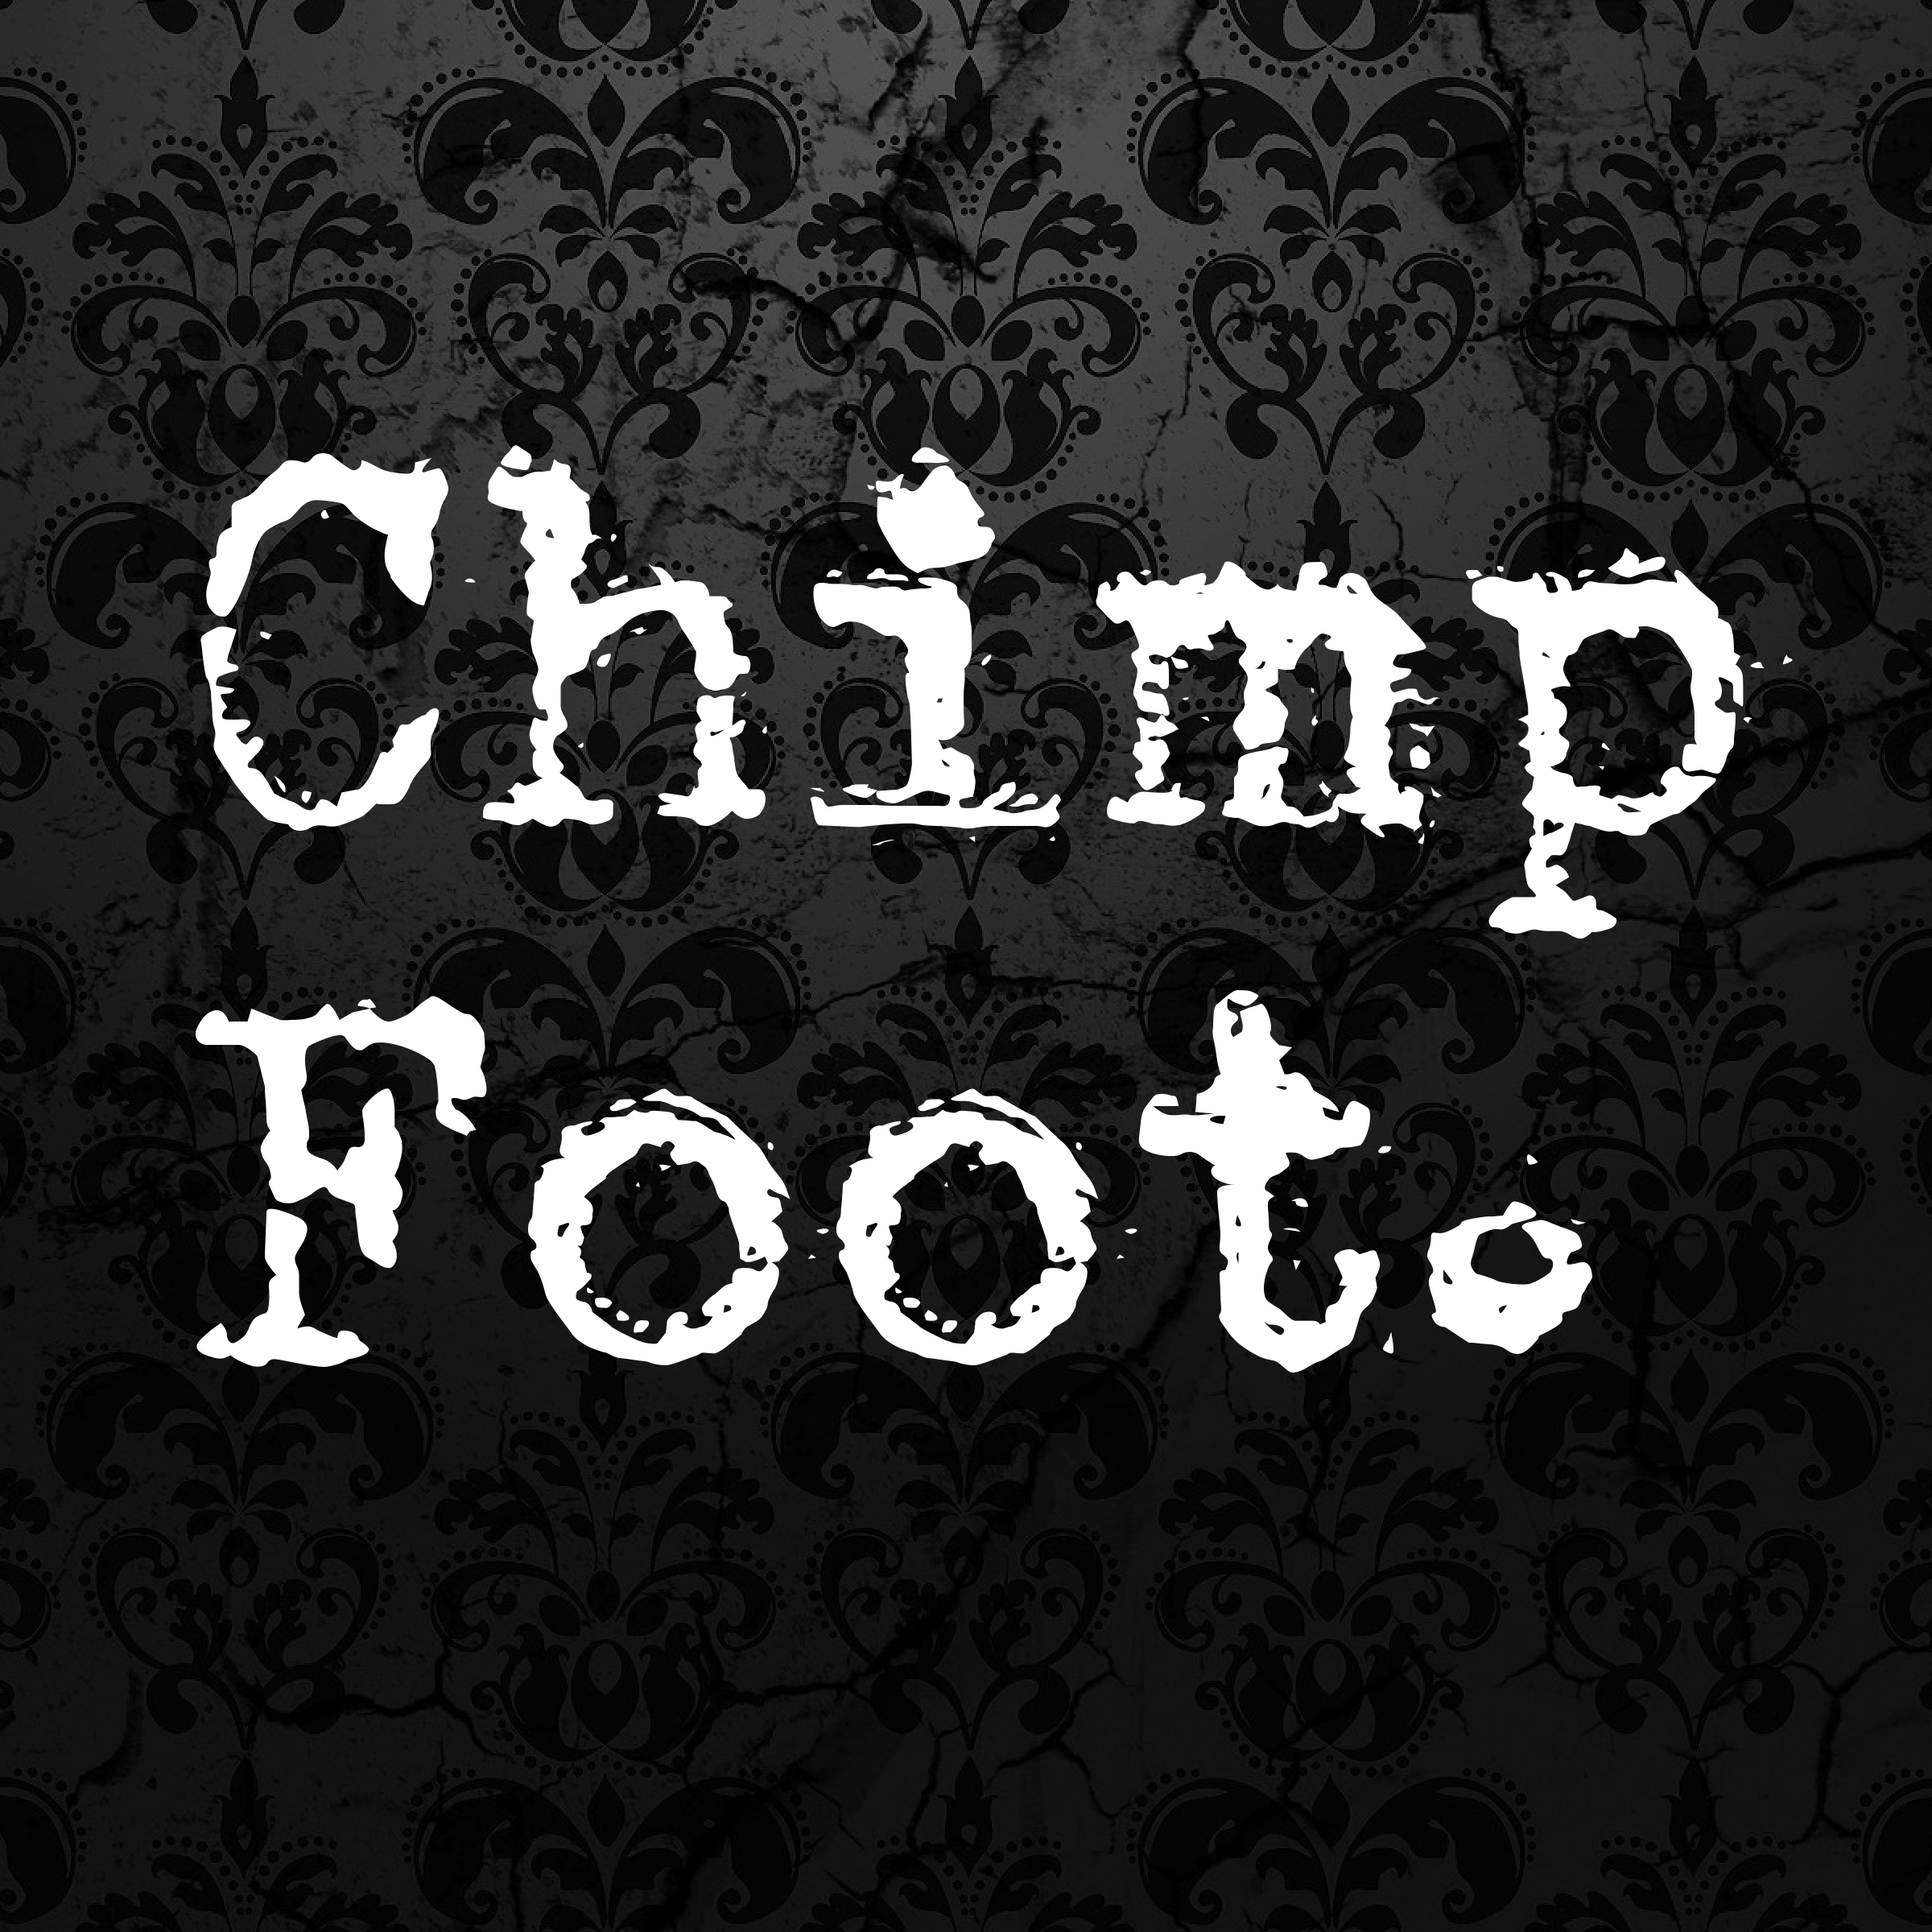 Chimp Foot.